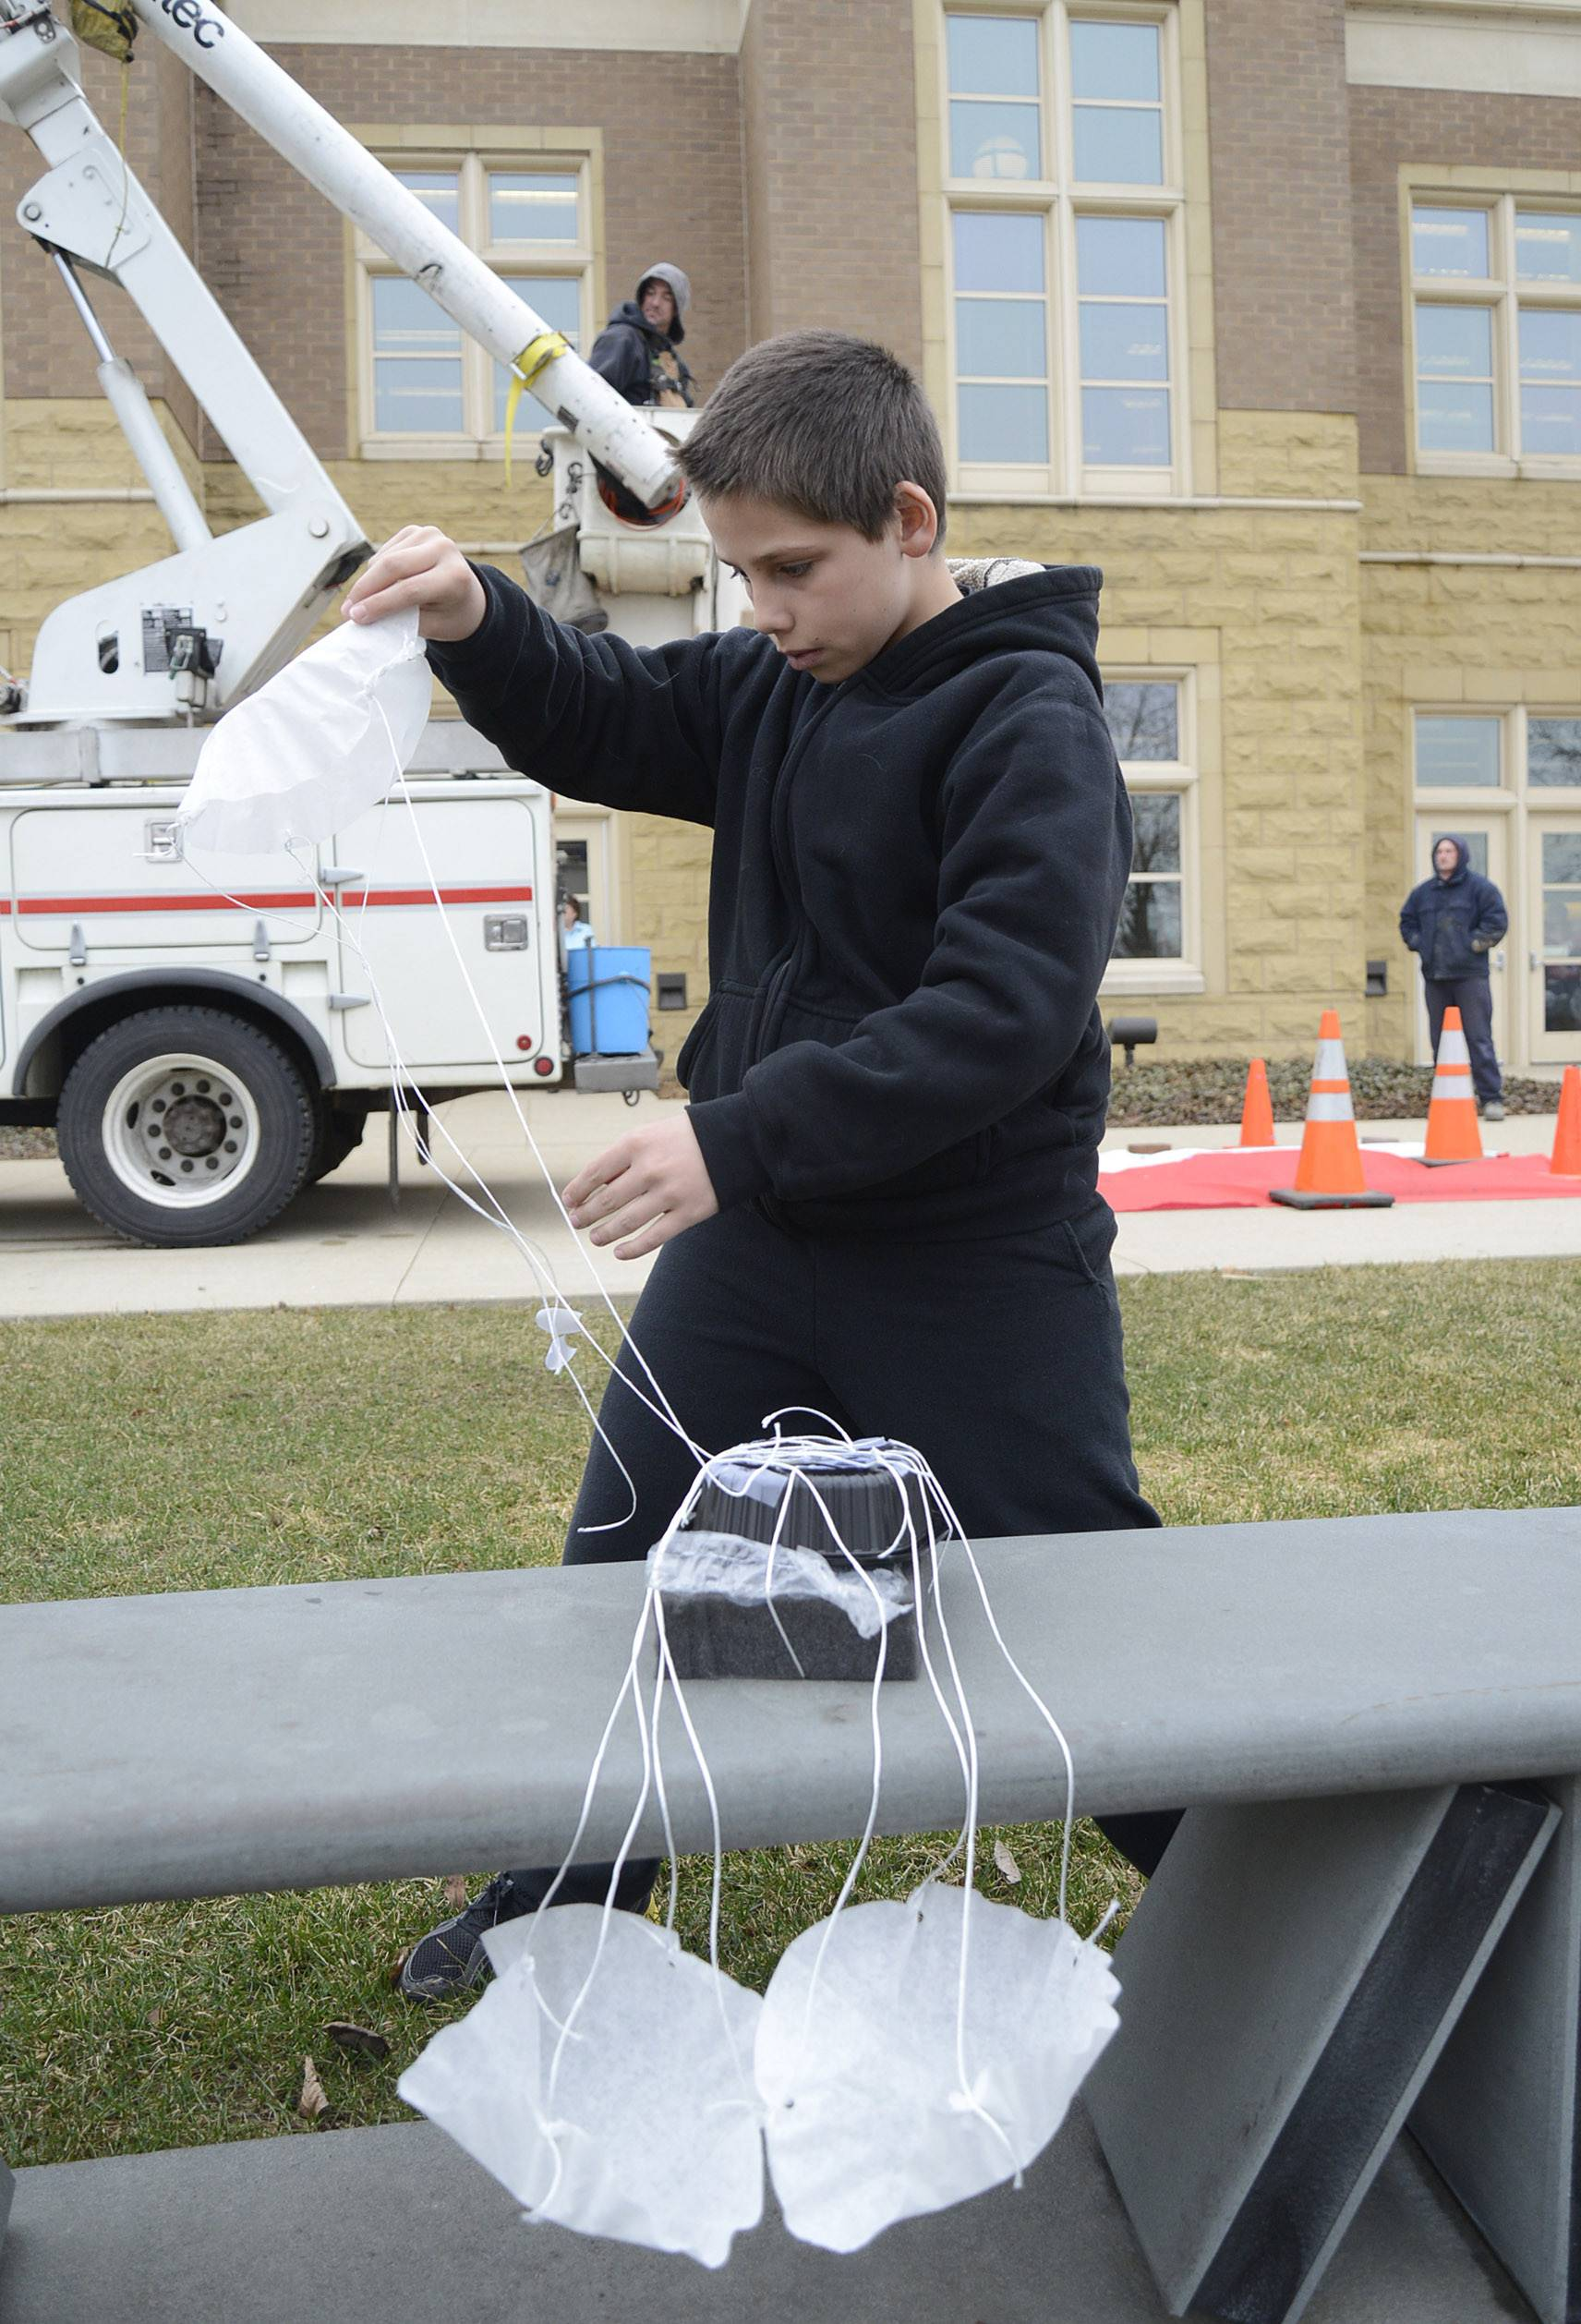 Benny Avila, 10, of Batavia preps his coffee filter parachute after inserting a raw egg into its protective casing for the egg drop competition Thursday at Batavia Public Library. A bucket truck from the city's electric department helped release the entries.